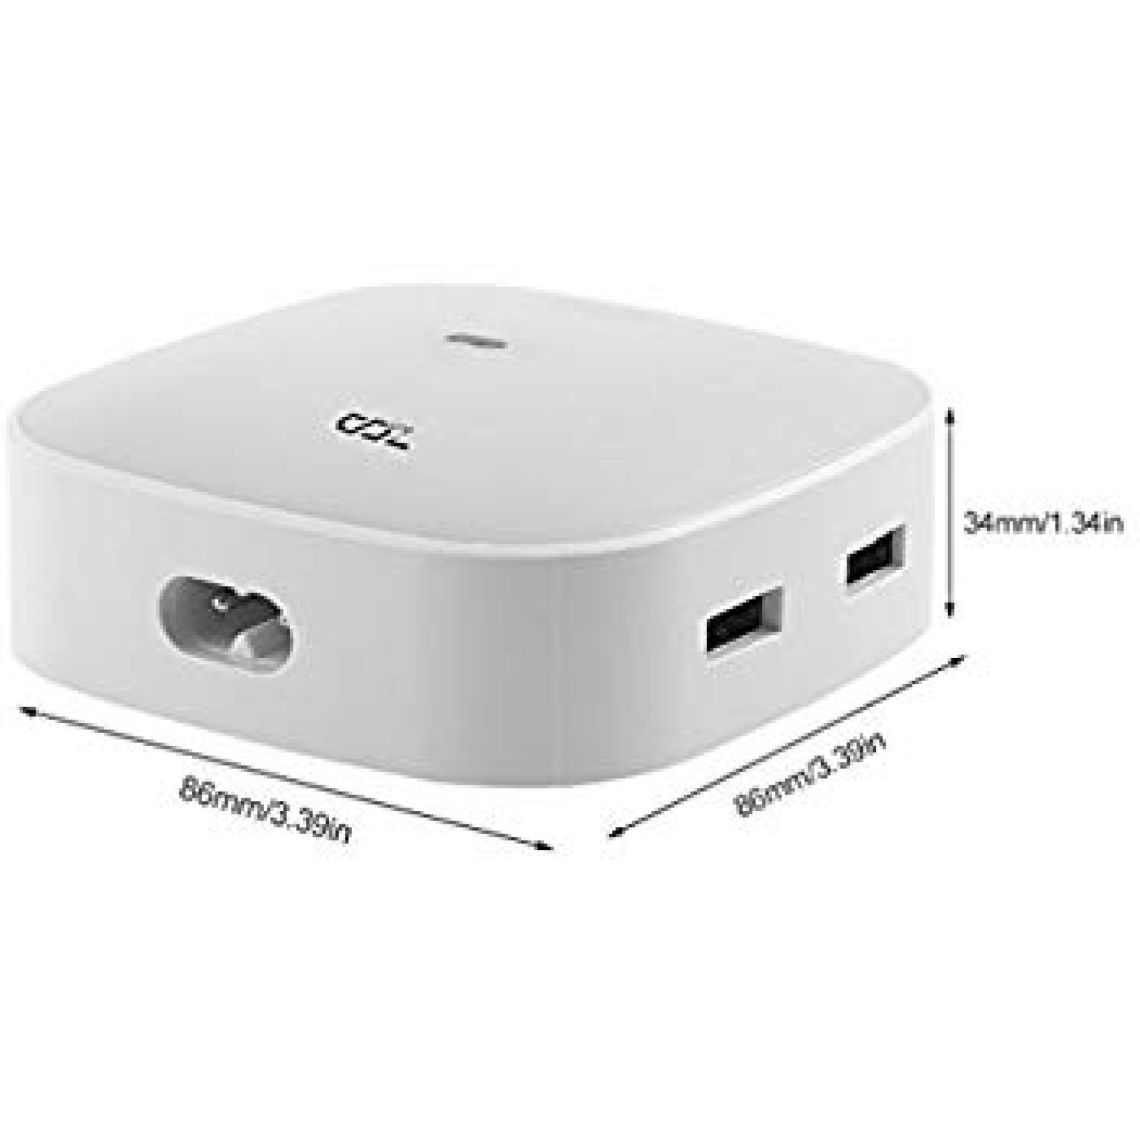 Amazon.com: Desktop USB Charging Station with Gesure Control by HOBFU 25W 2.4A 4-Port USB Charger Desktop Charger with iSmart Technology: Beauty